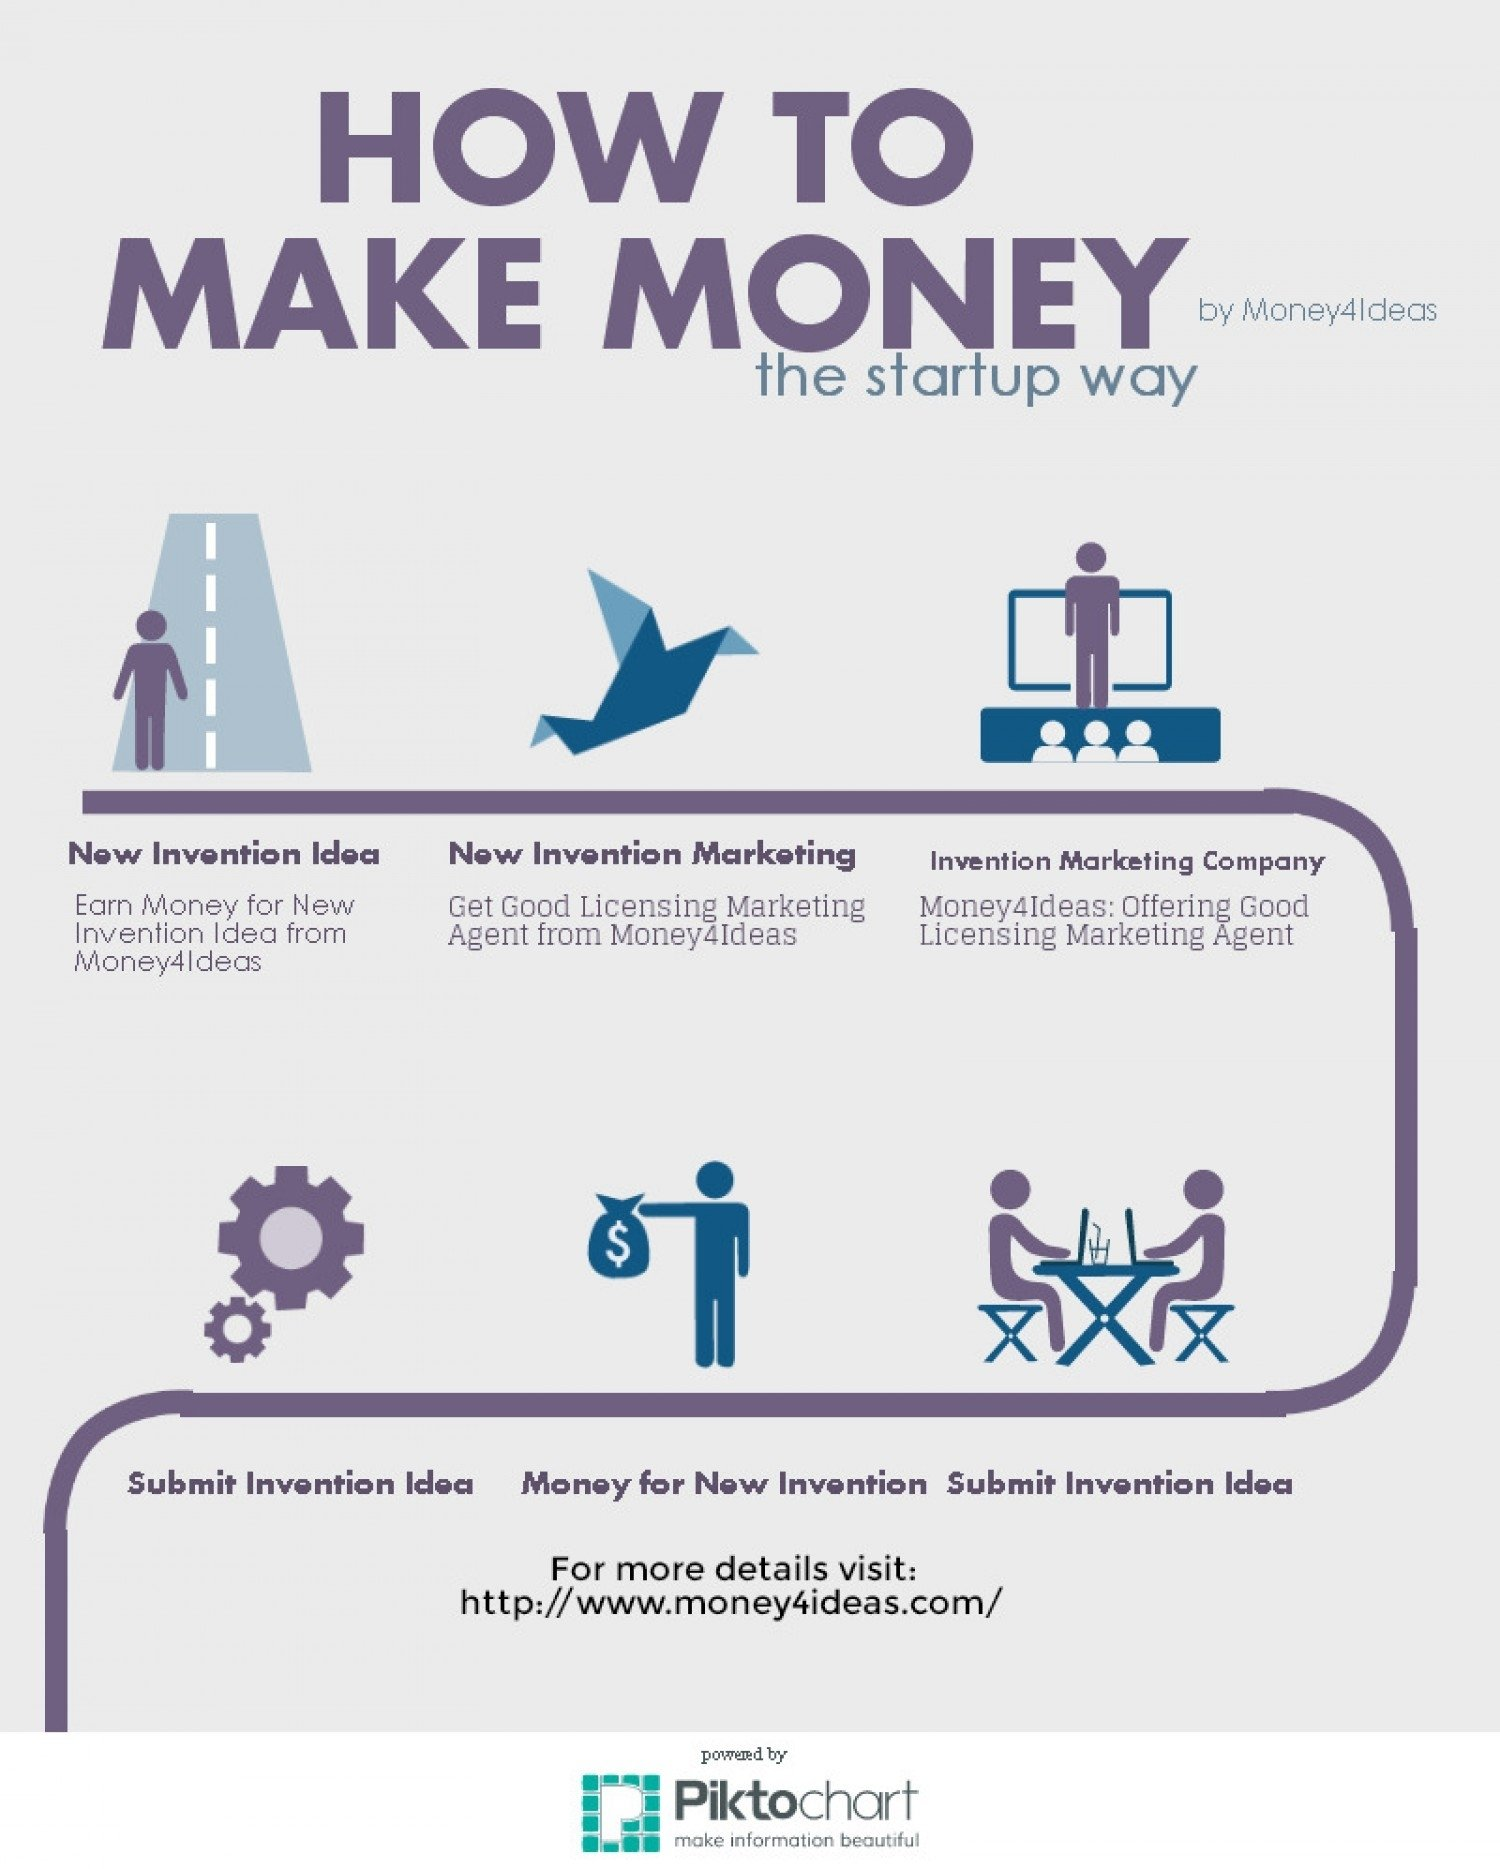 10 Trendy Ideas On How To Make Money earn money for new invention idea from money4ideas visual ly 2021